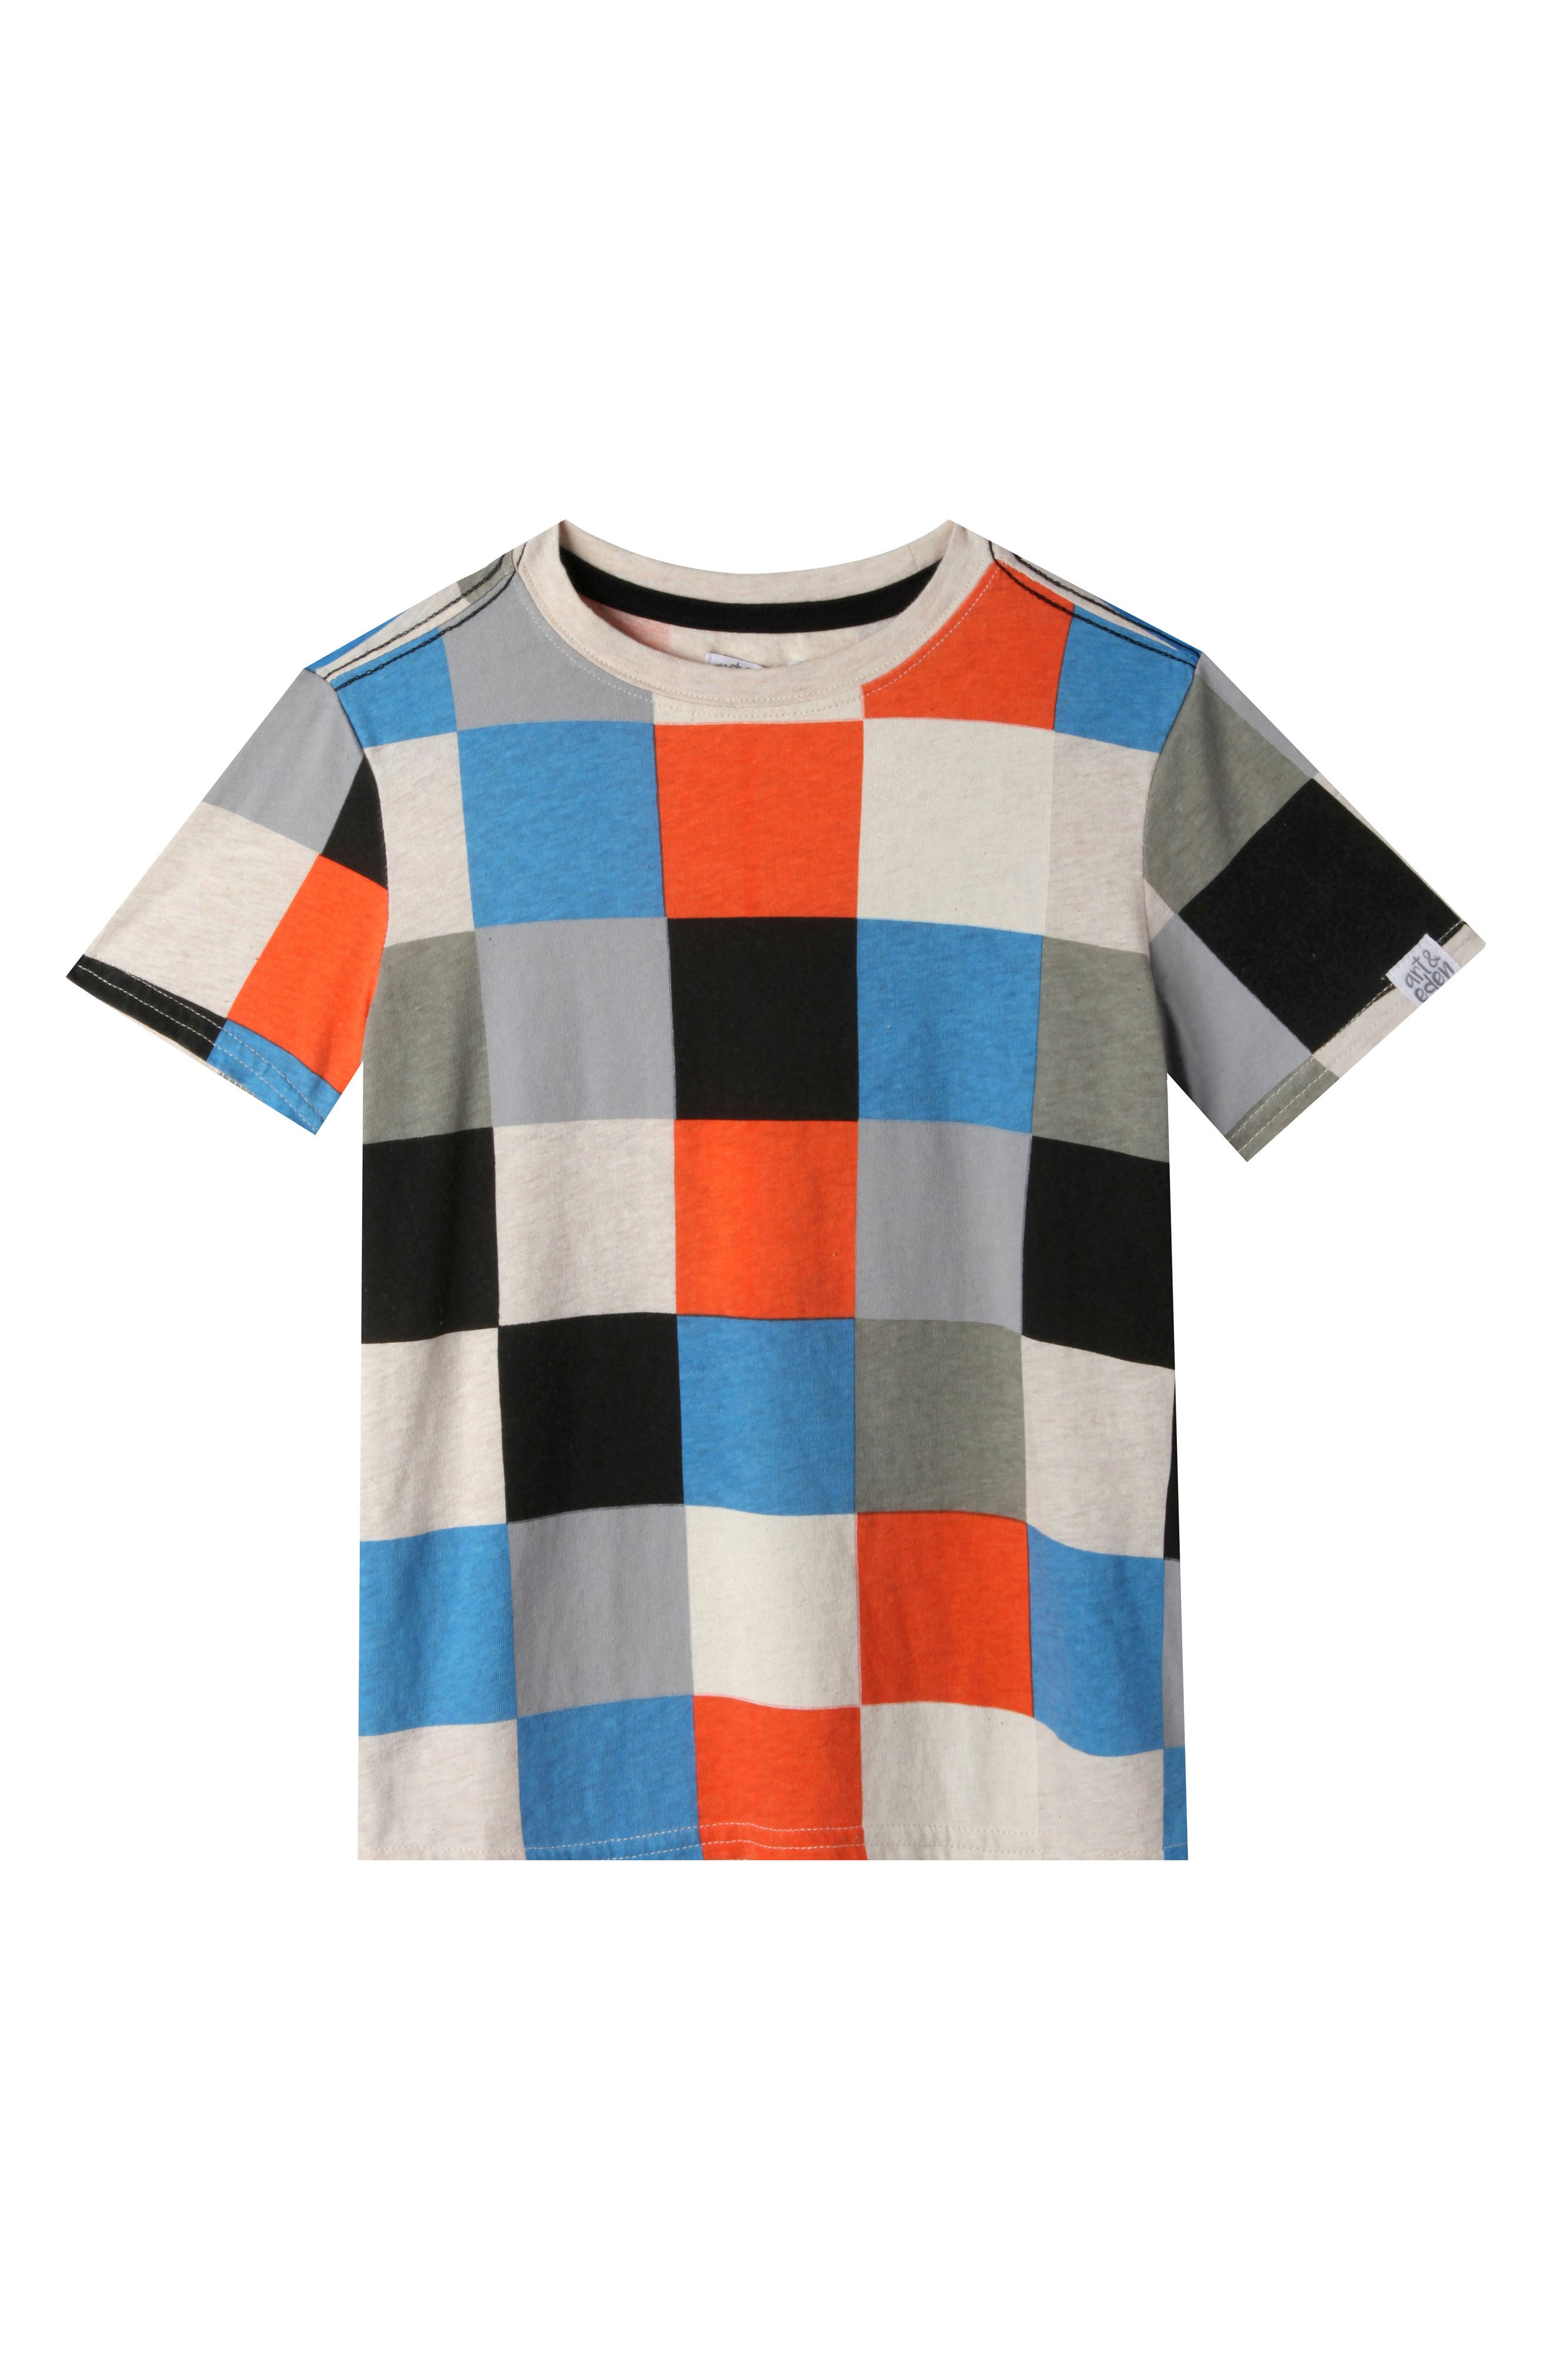 Alternate Image 1 Selected - Art & Eden Landon Check Organic Cotton T-Shirt (Toddler Boys, Little Boys & Big Boys)